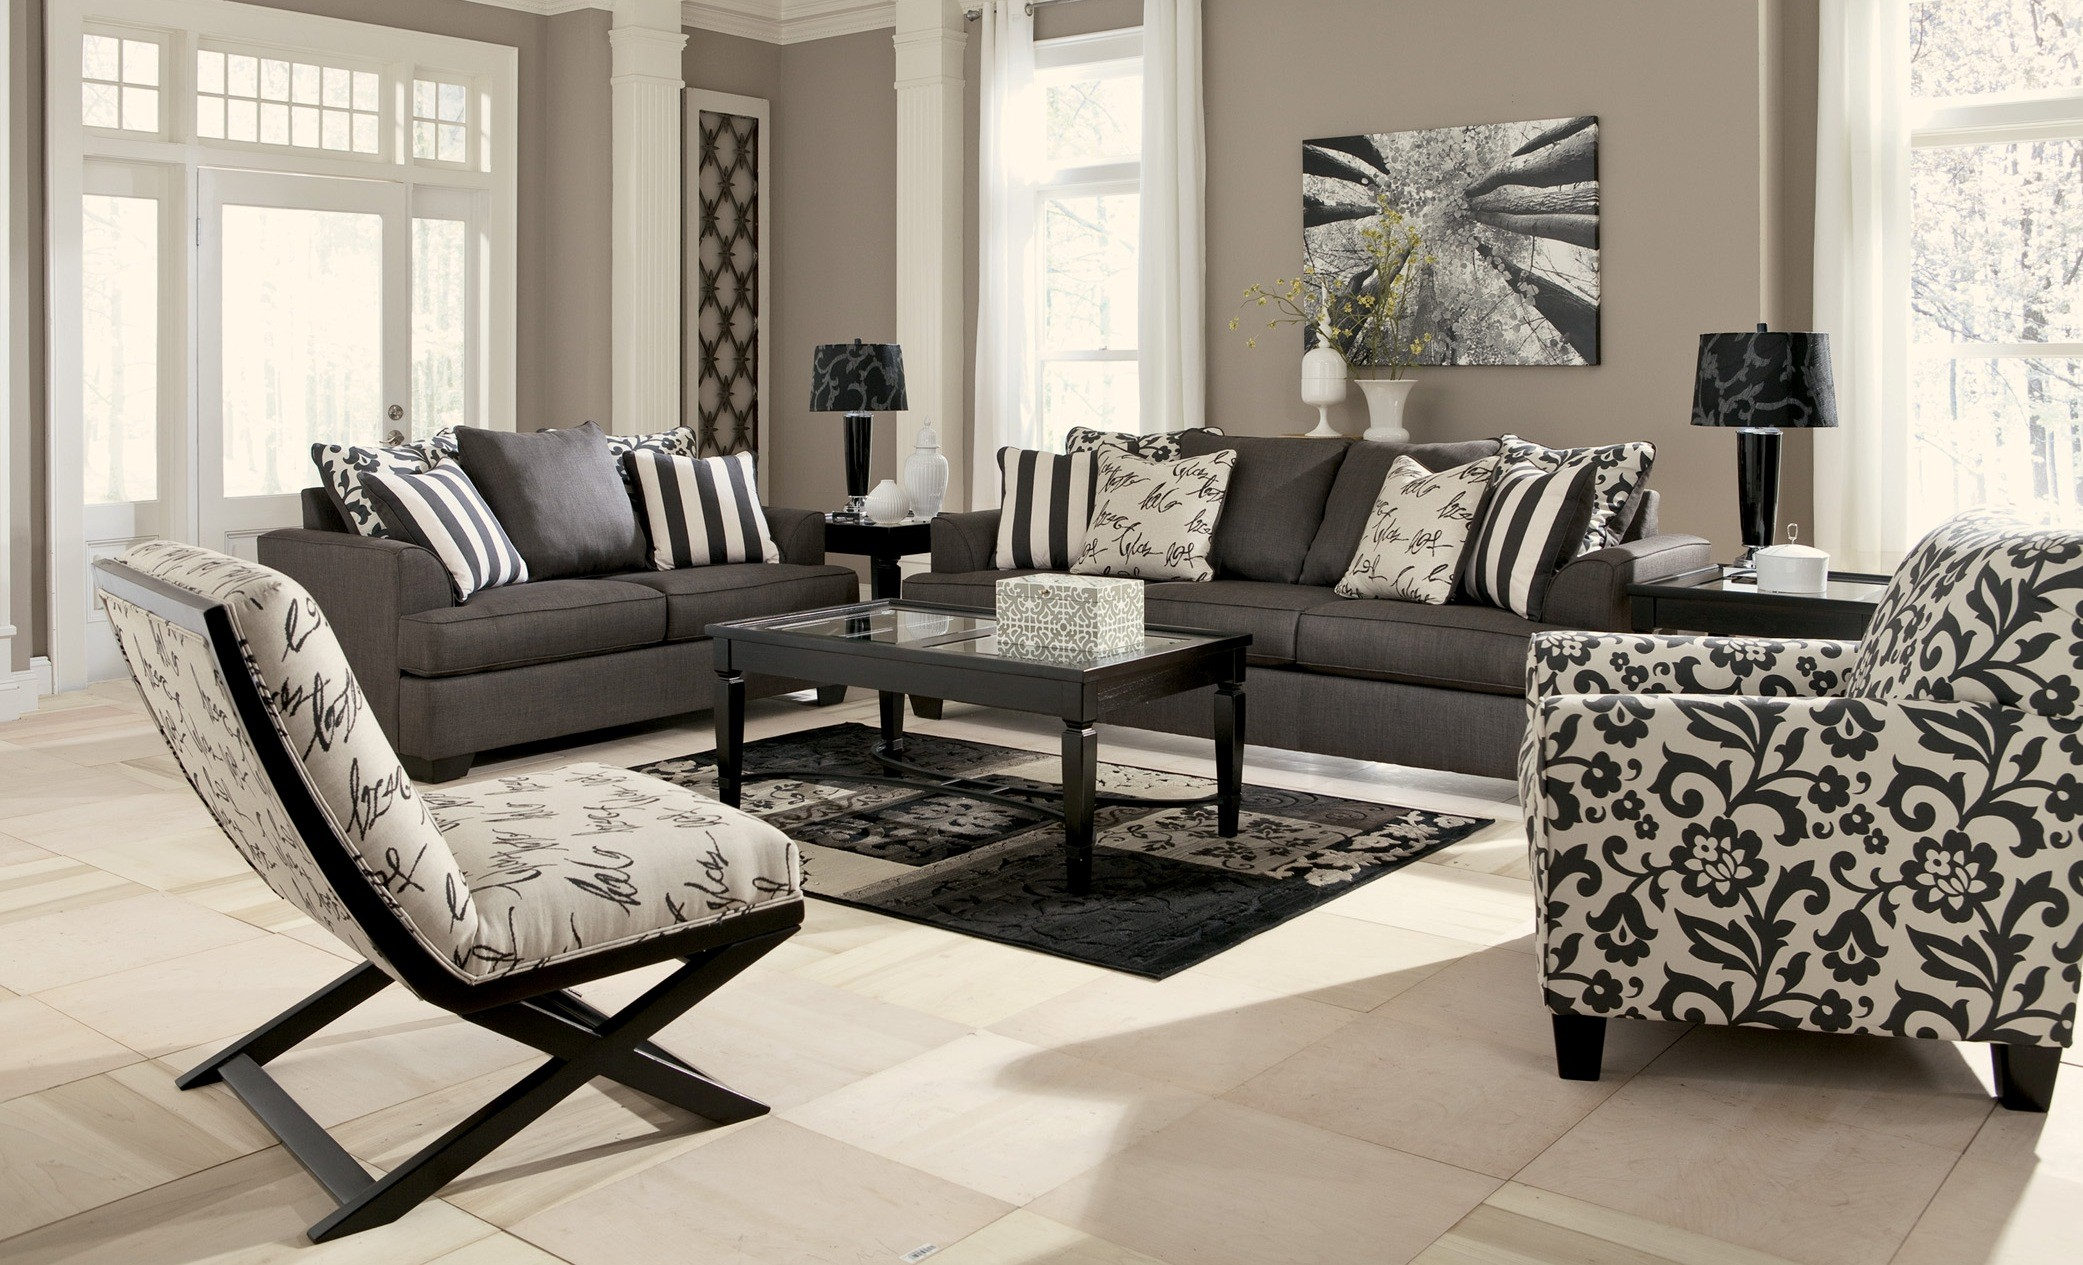 Levon Charcoal Living Room Set From Ashley 73403 Coleman Furniture